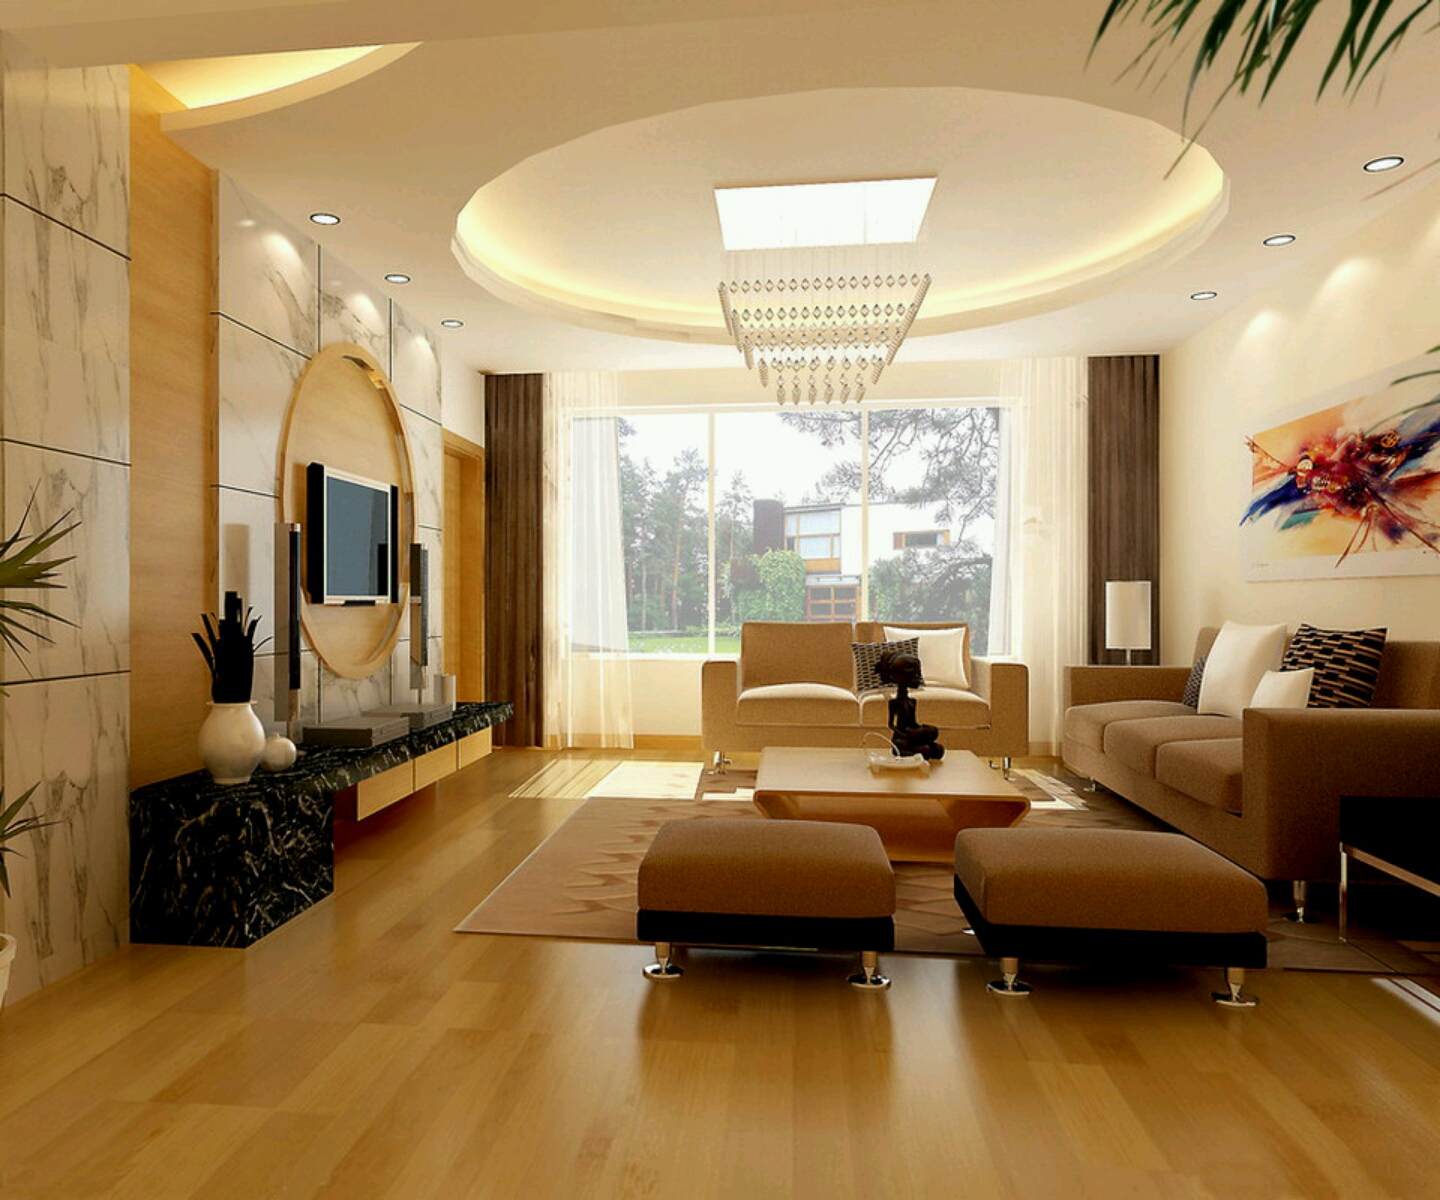 Modern interior decoration living rooms ceiling designs for Living room makeover ideas